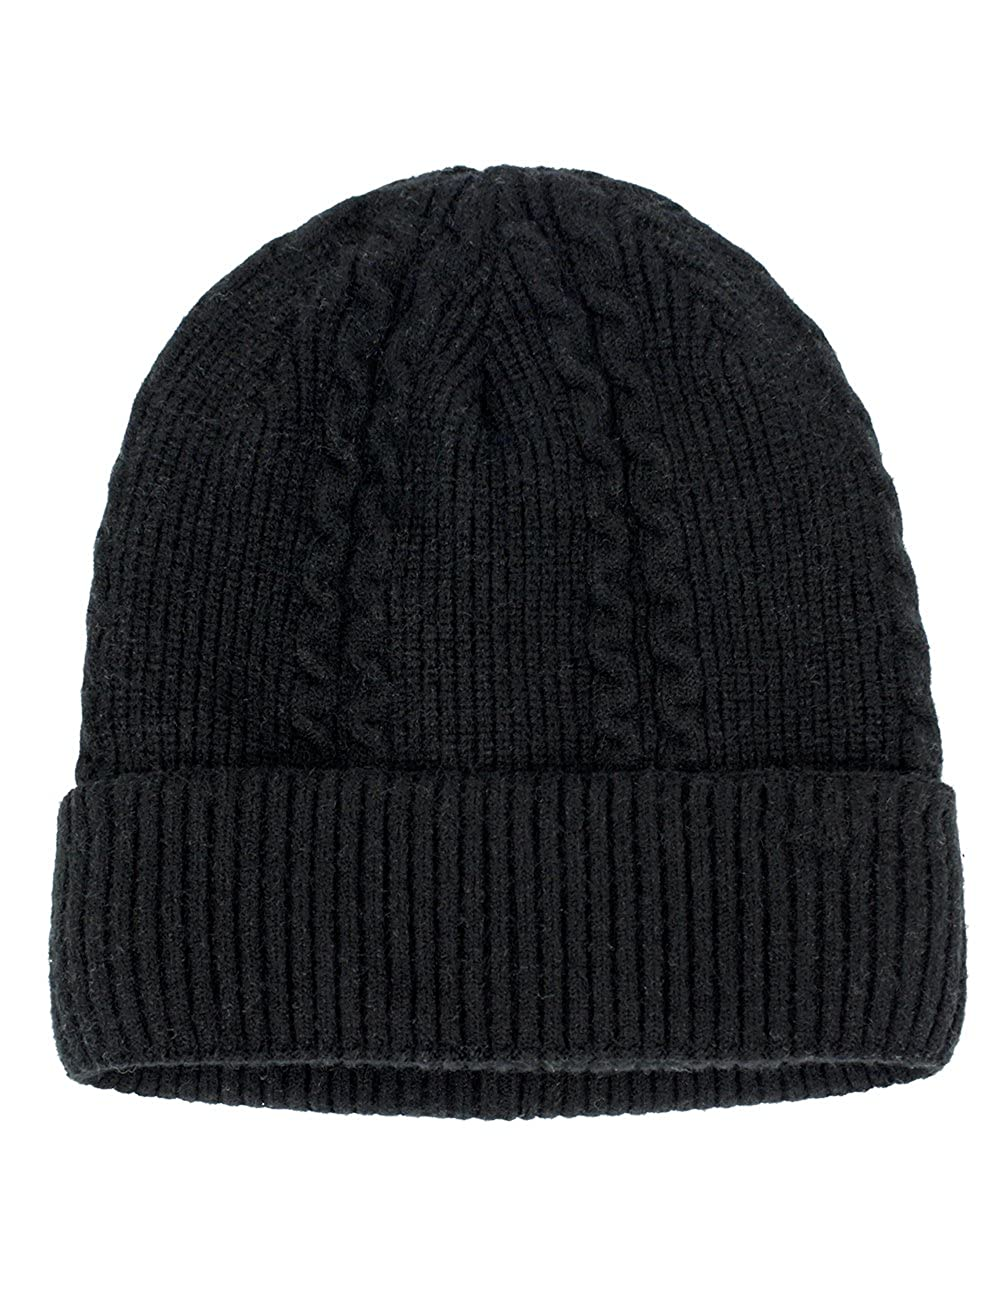 Dahlia Men s Angora Cable Knit Beanie for Larger Head 7da3b89ff58